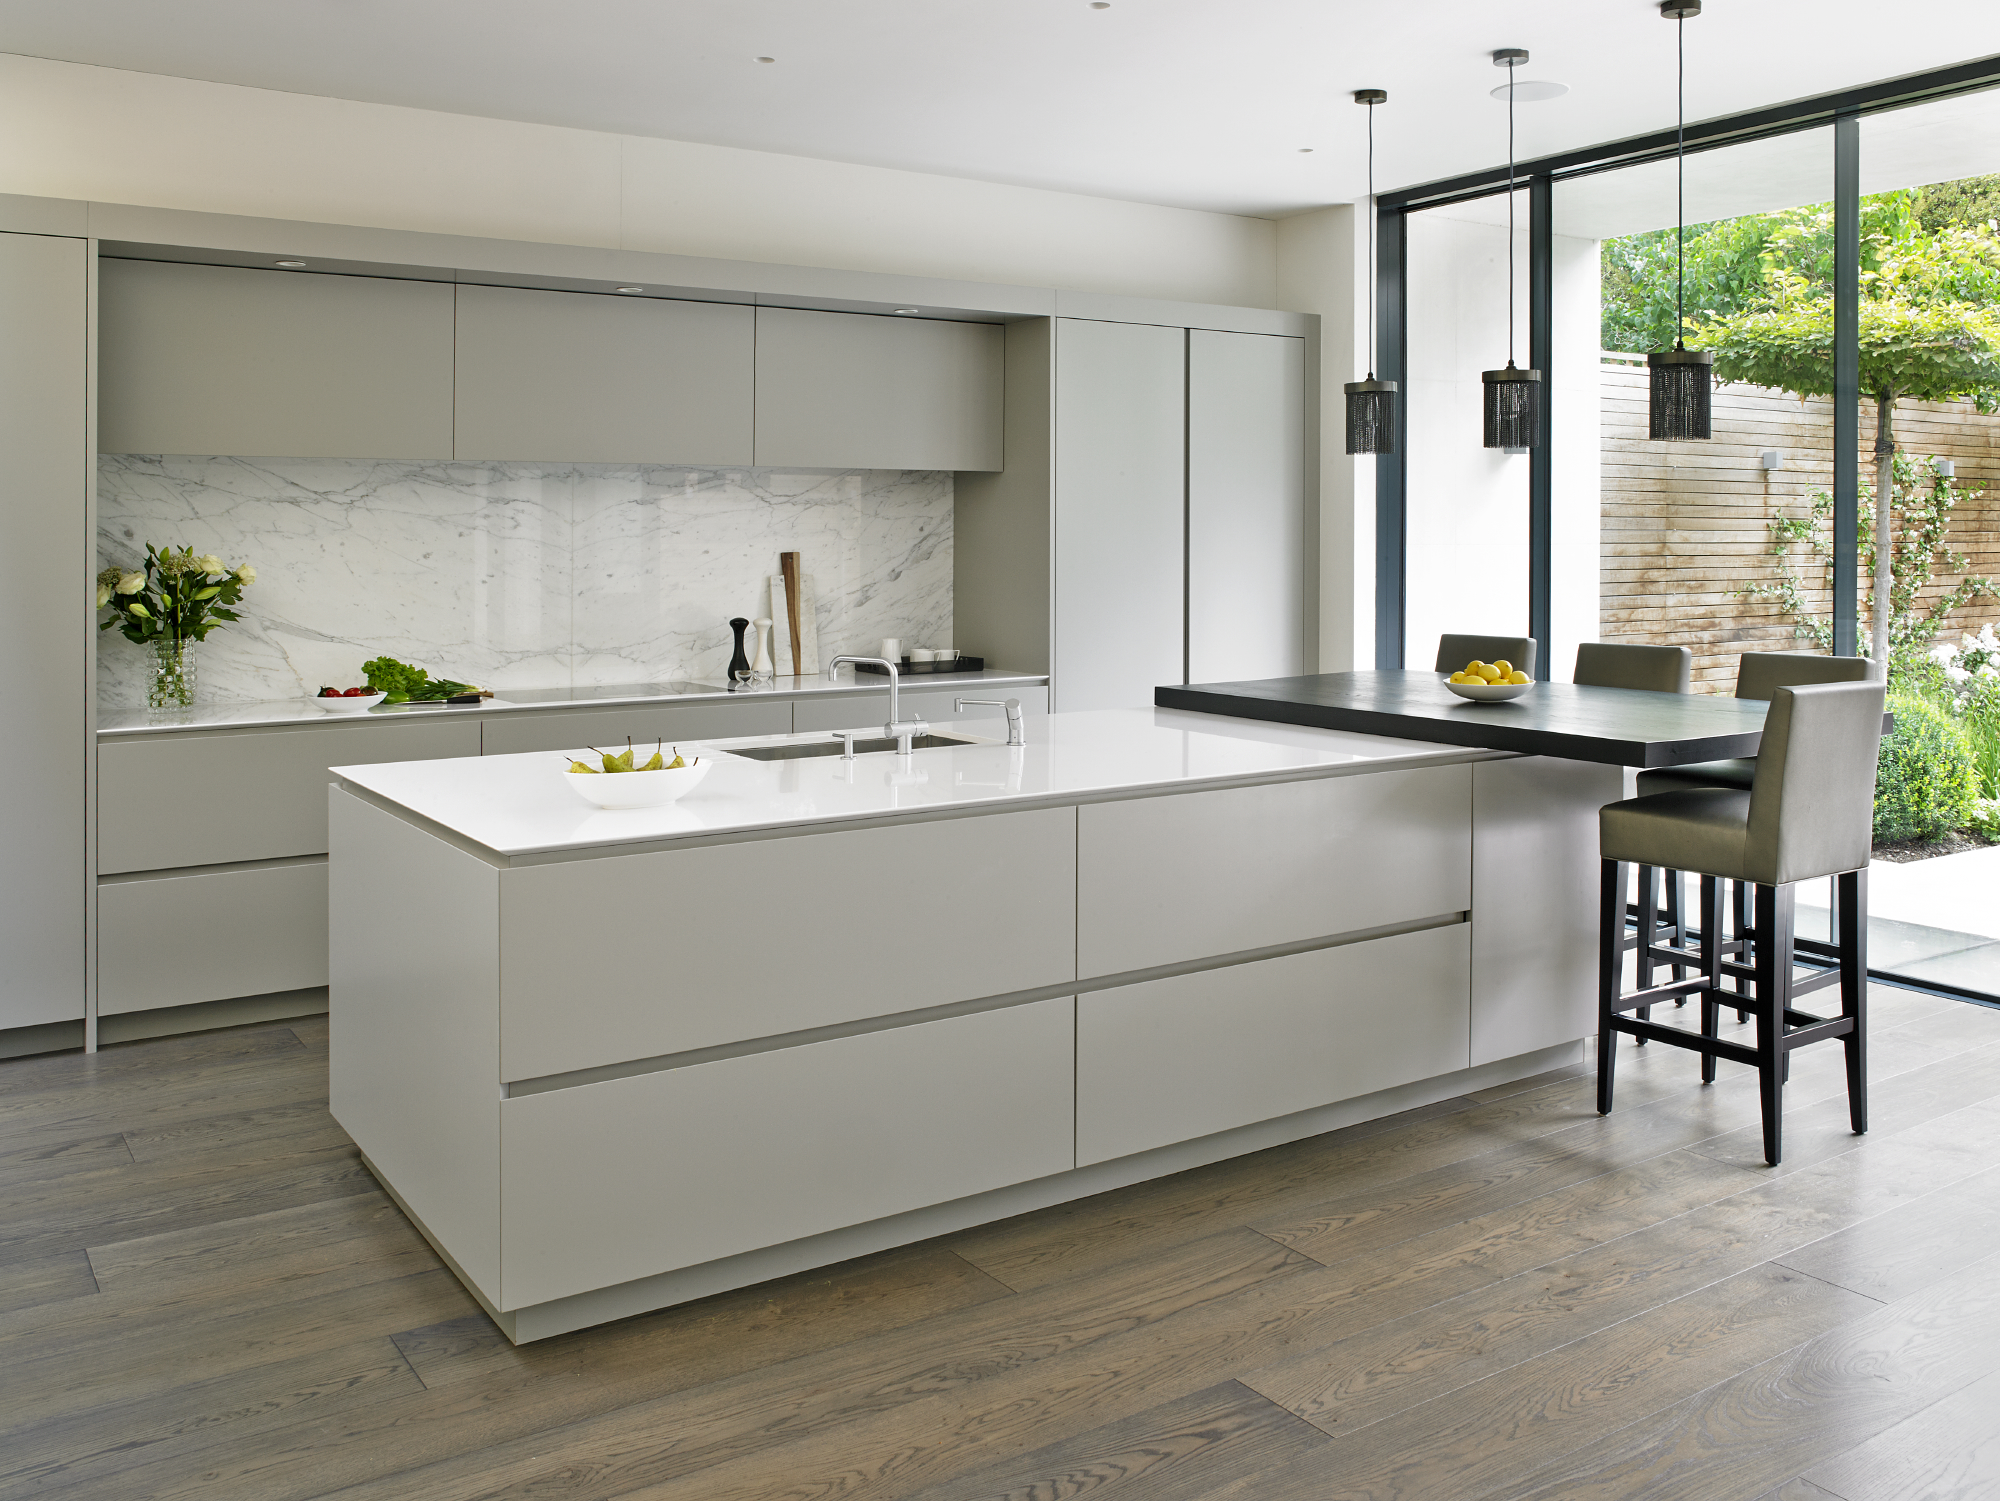 Wandsworth family kitchen design bespoke kitchens London